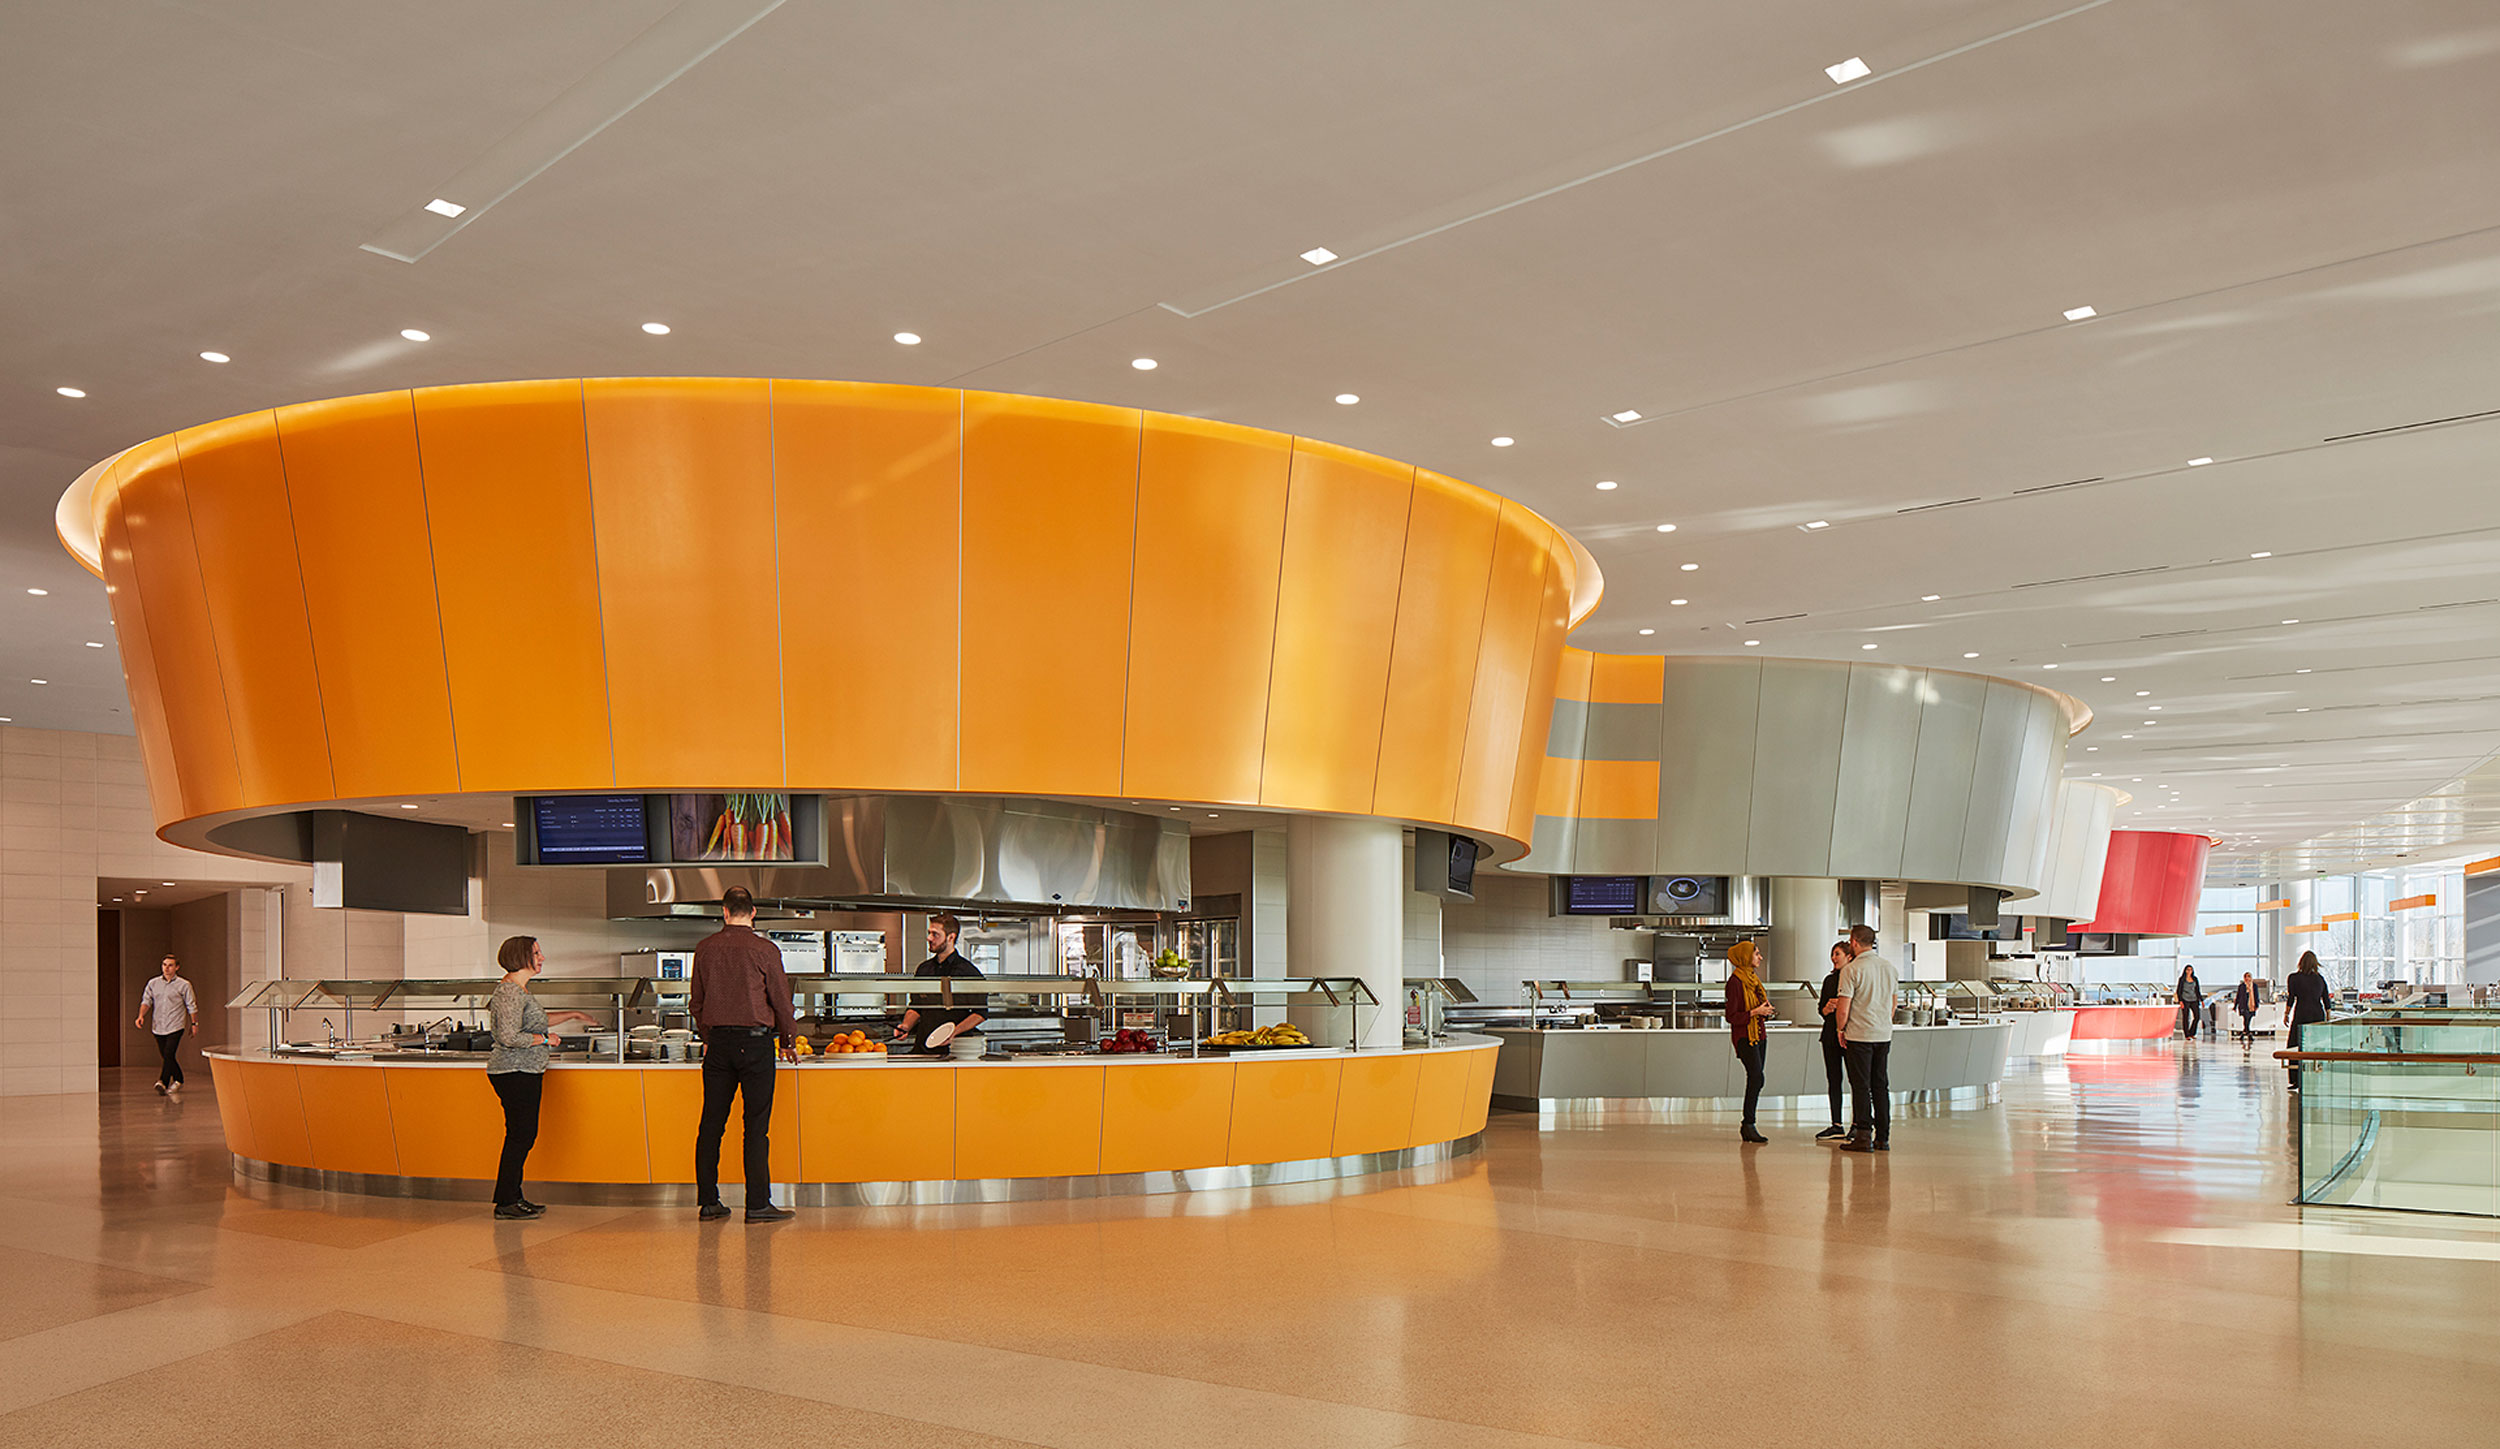 Dining Hall, Northwestern Mutual, Milwaukee, WI (Photo by Tom Harris)